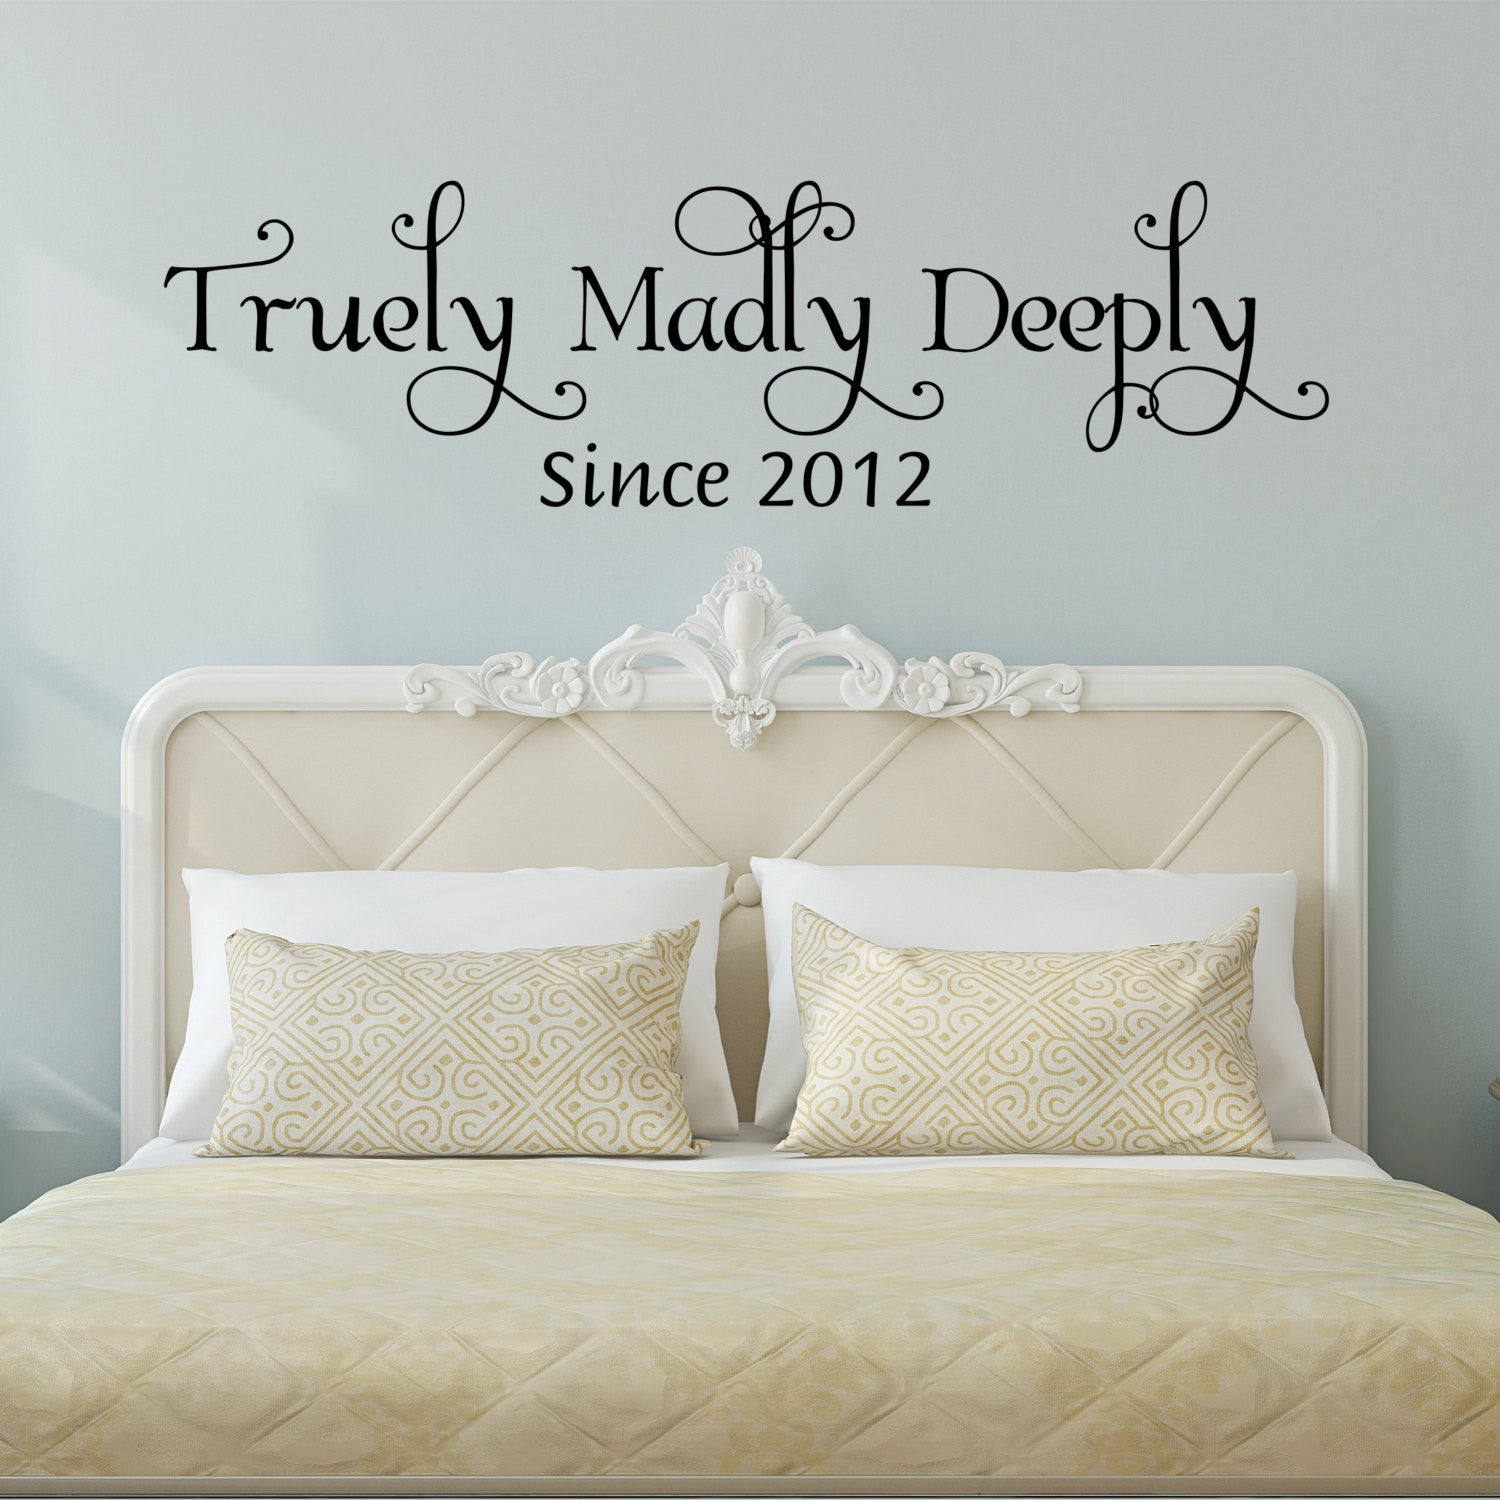 Truly Madly Deeply Wall Decal  By Decor Designs Decals, Bedroom Wall Decal    Bedroom